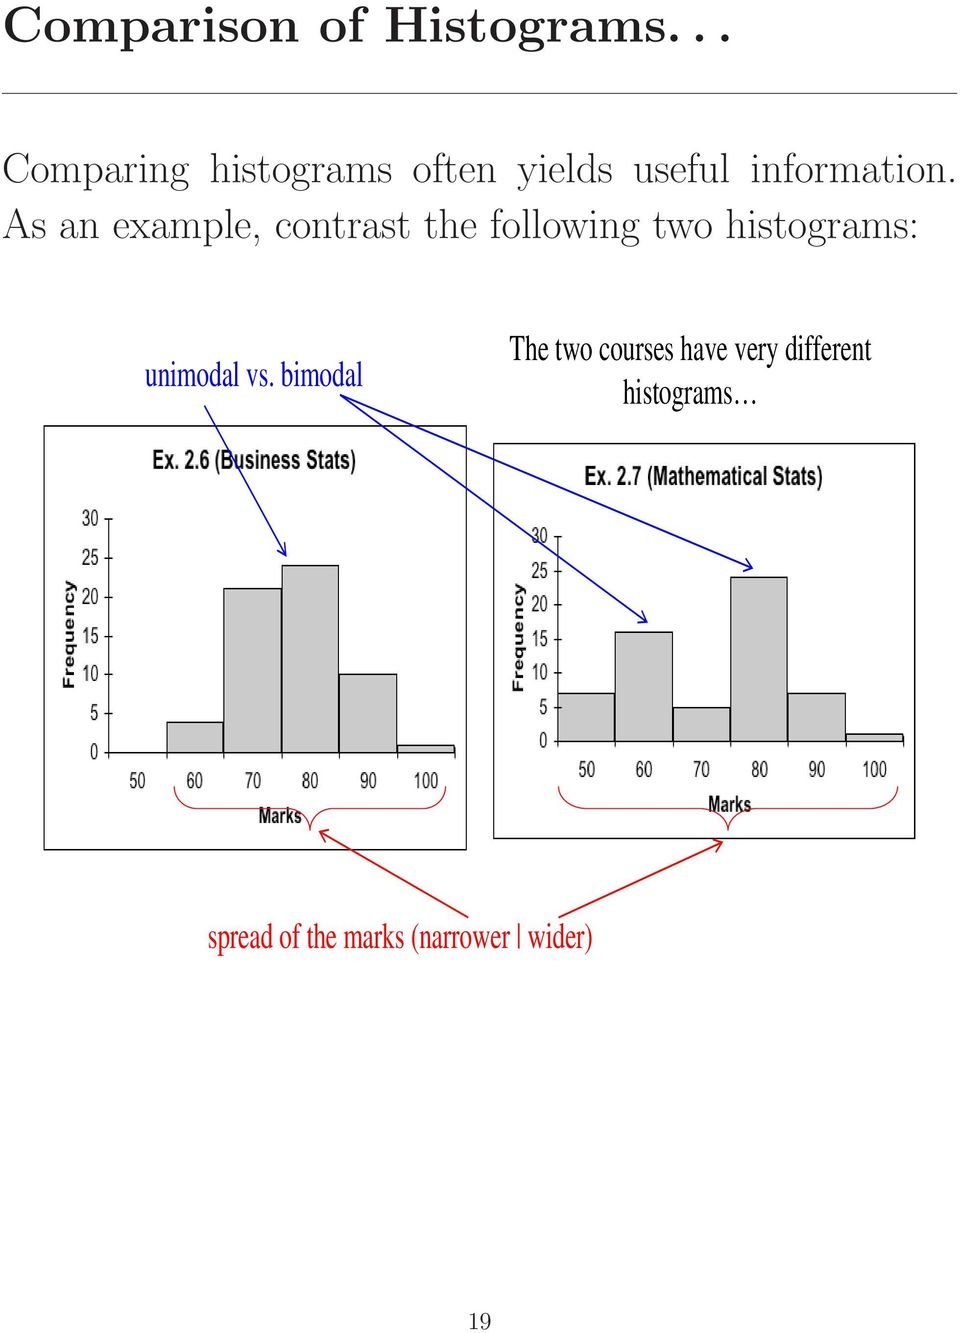 As an example, contrast the following two histograms: